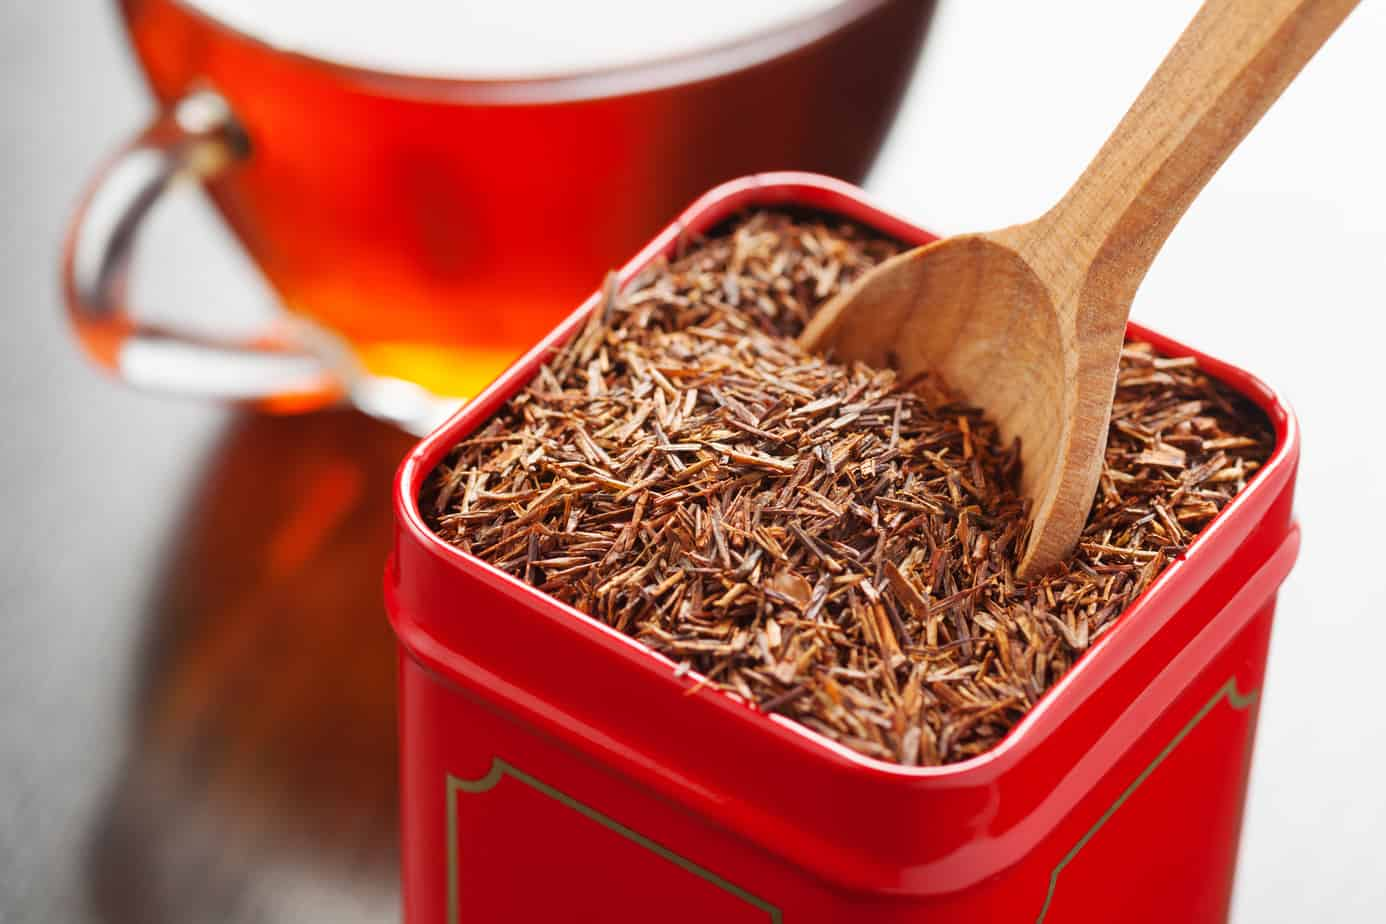 Rooibos and honeybush tea coffee alternative